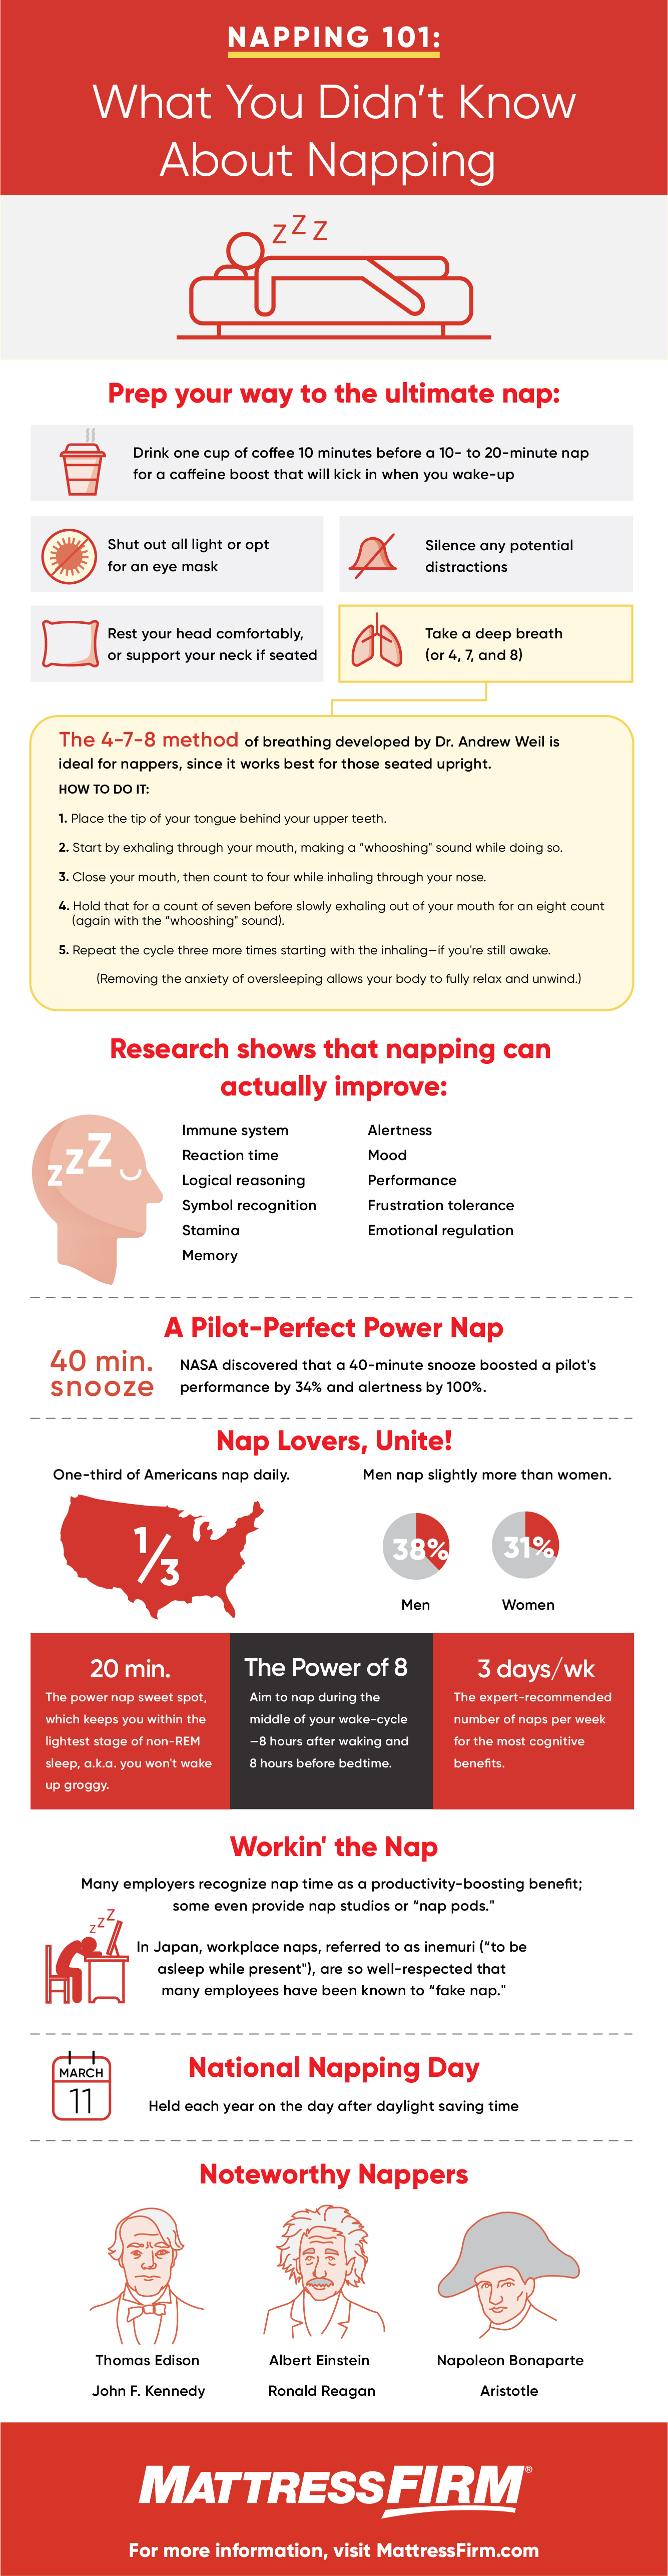 napping, benefits of napping, power nap, is napping healthy